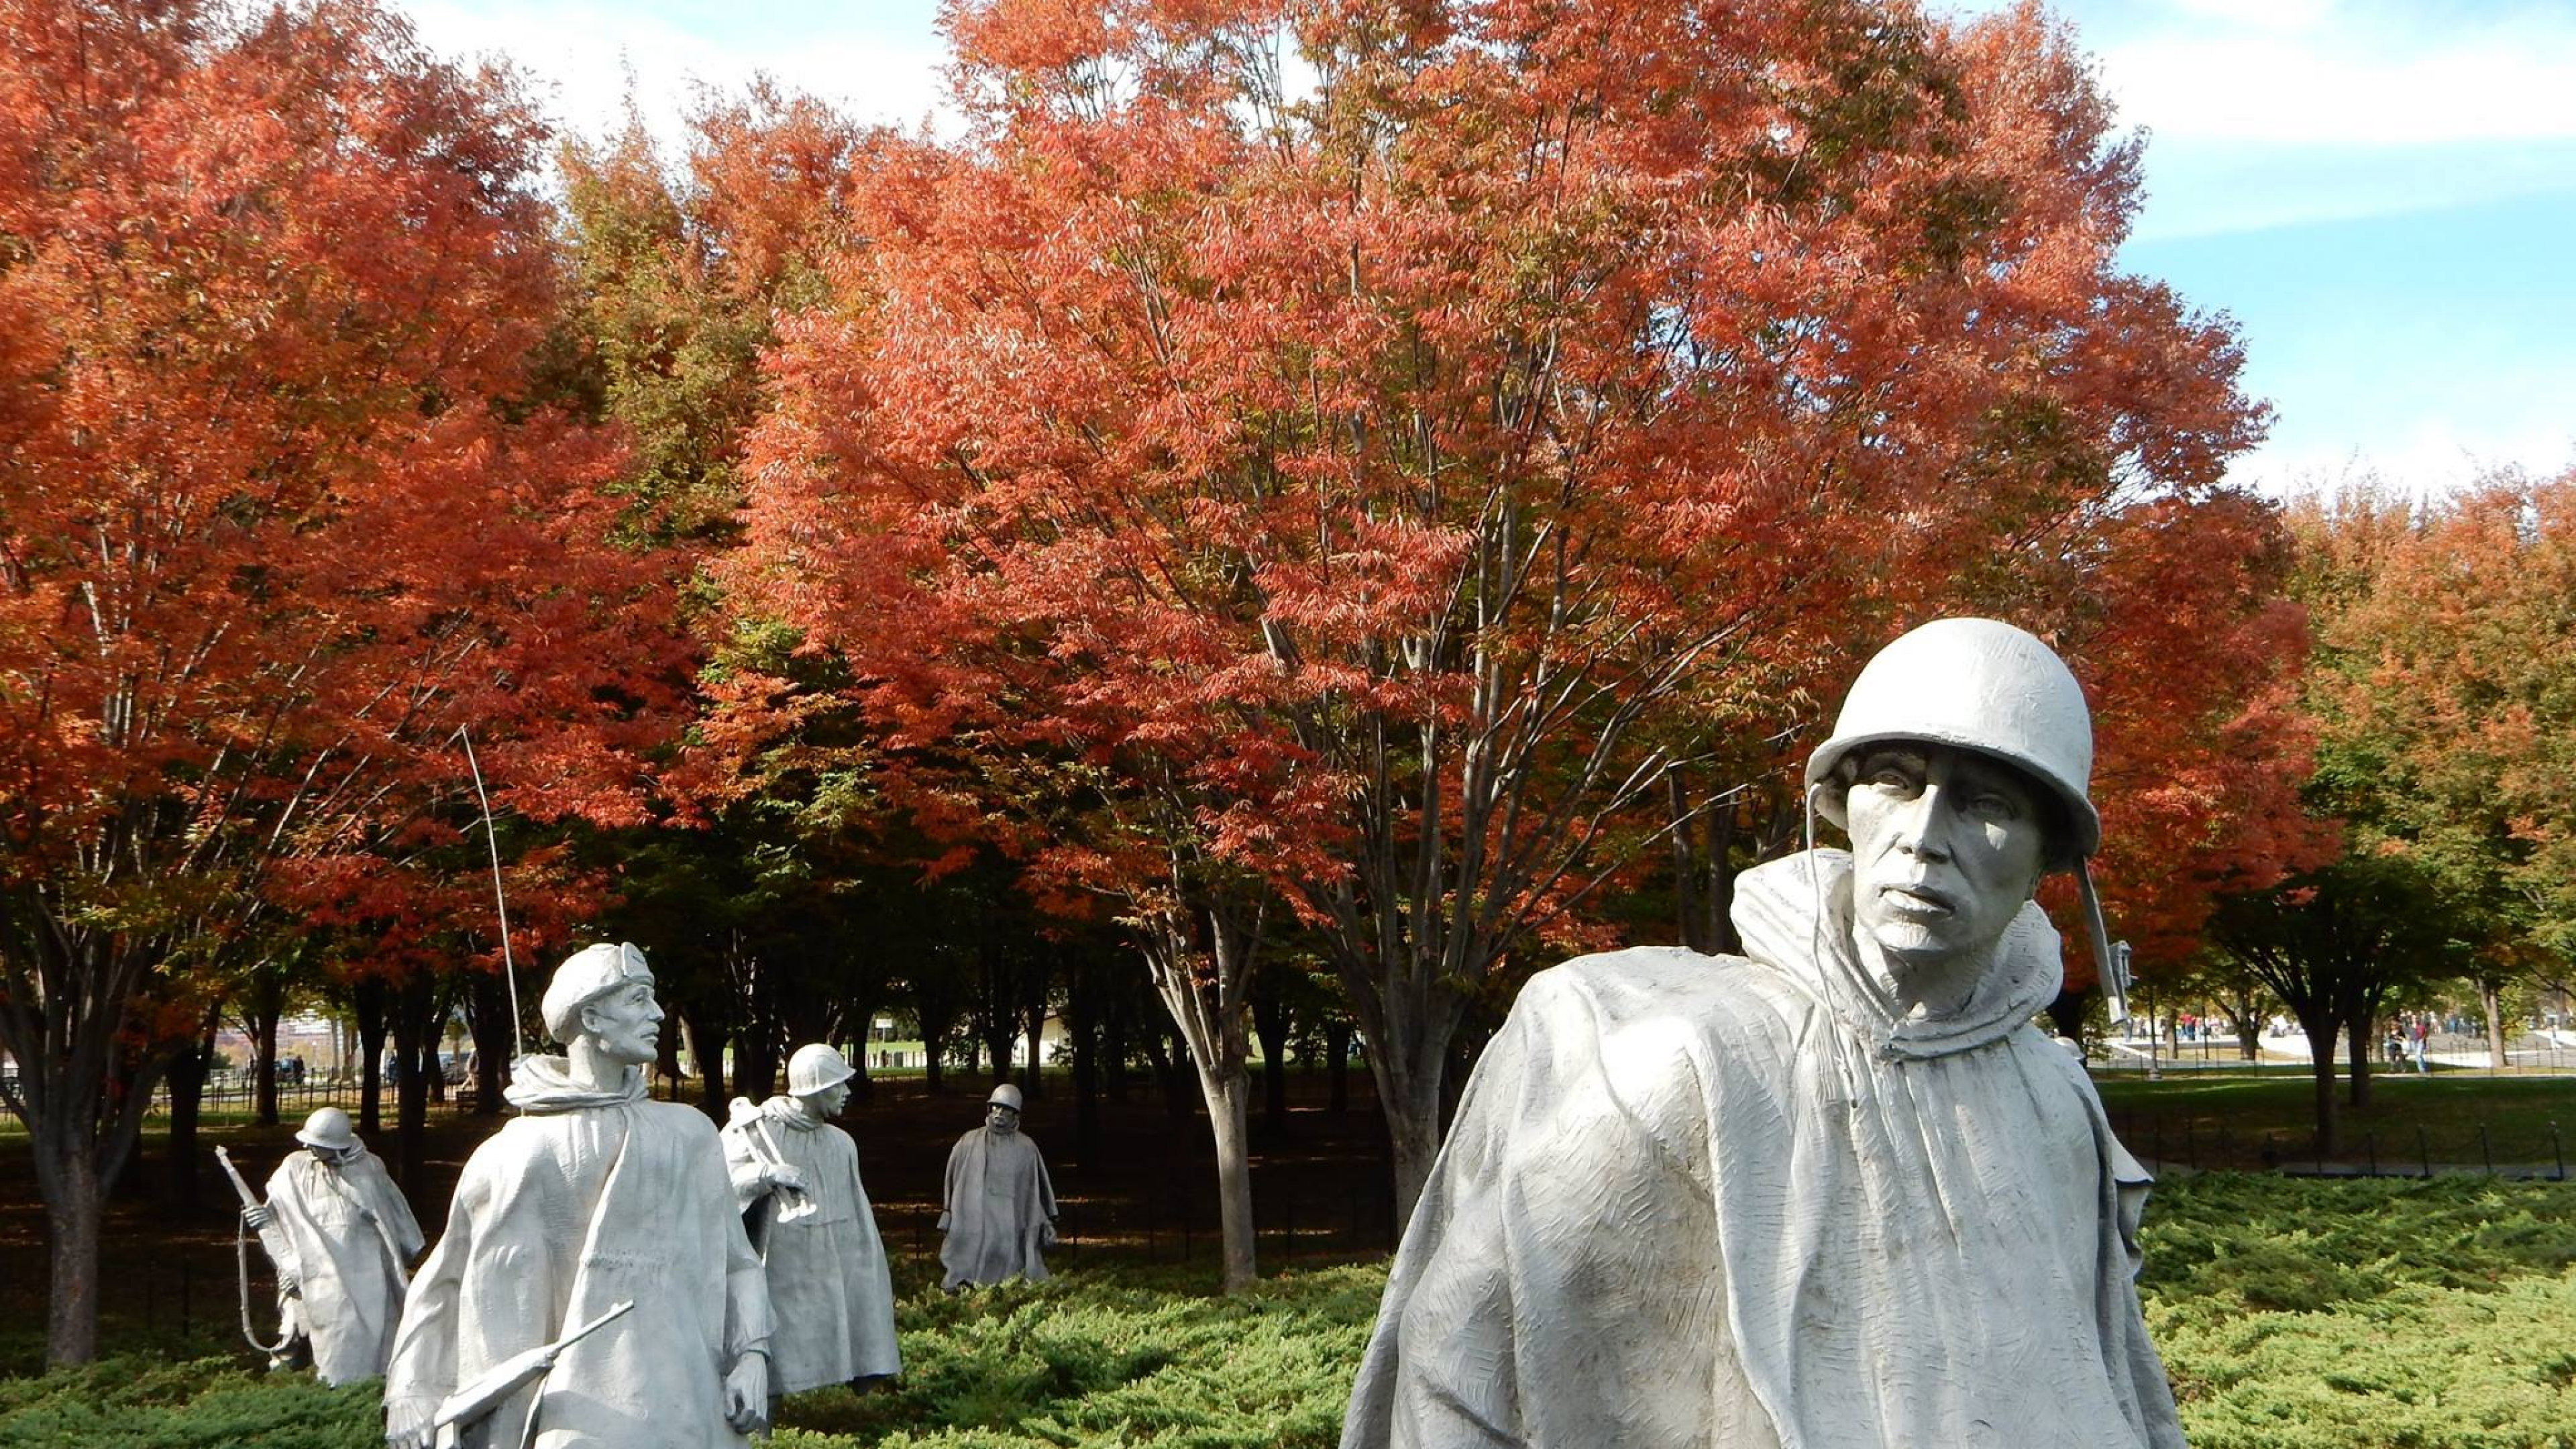 Statues of different types of servicemen from the Korean War in the middle of the Korean War Veterans Memorial in the Fall